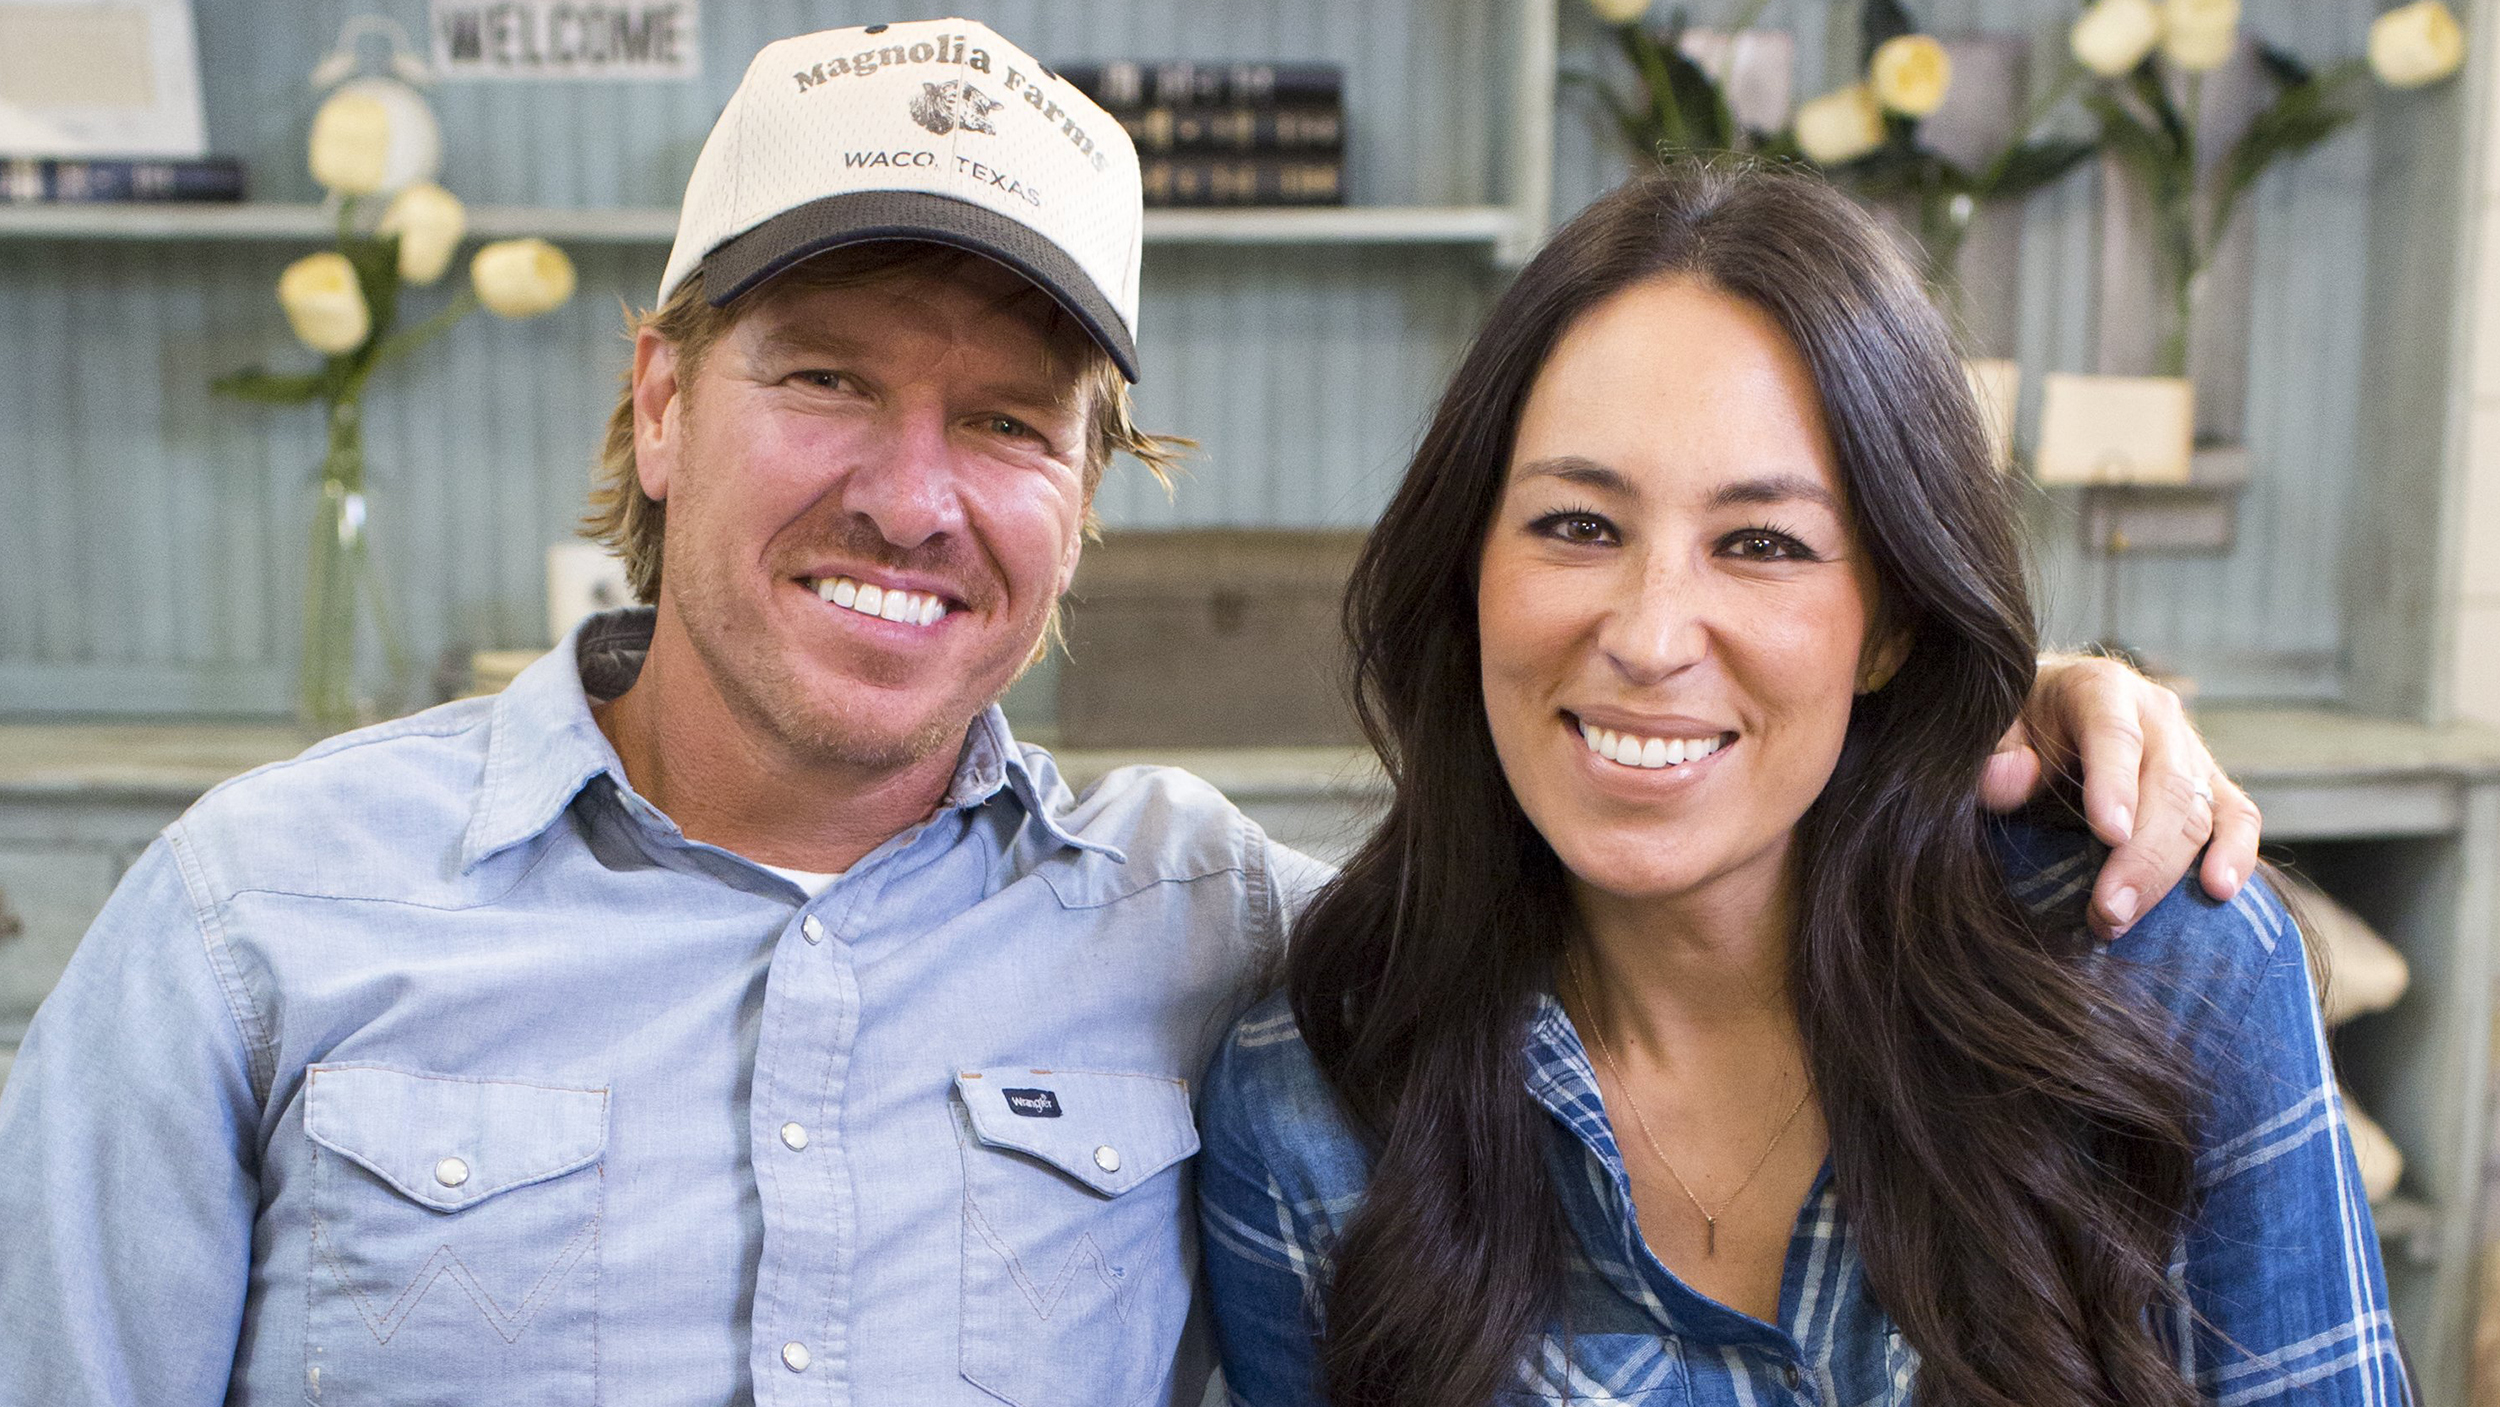 Texas Forever Where Chip And Joanna Gaines Would Live